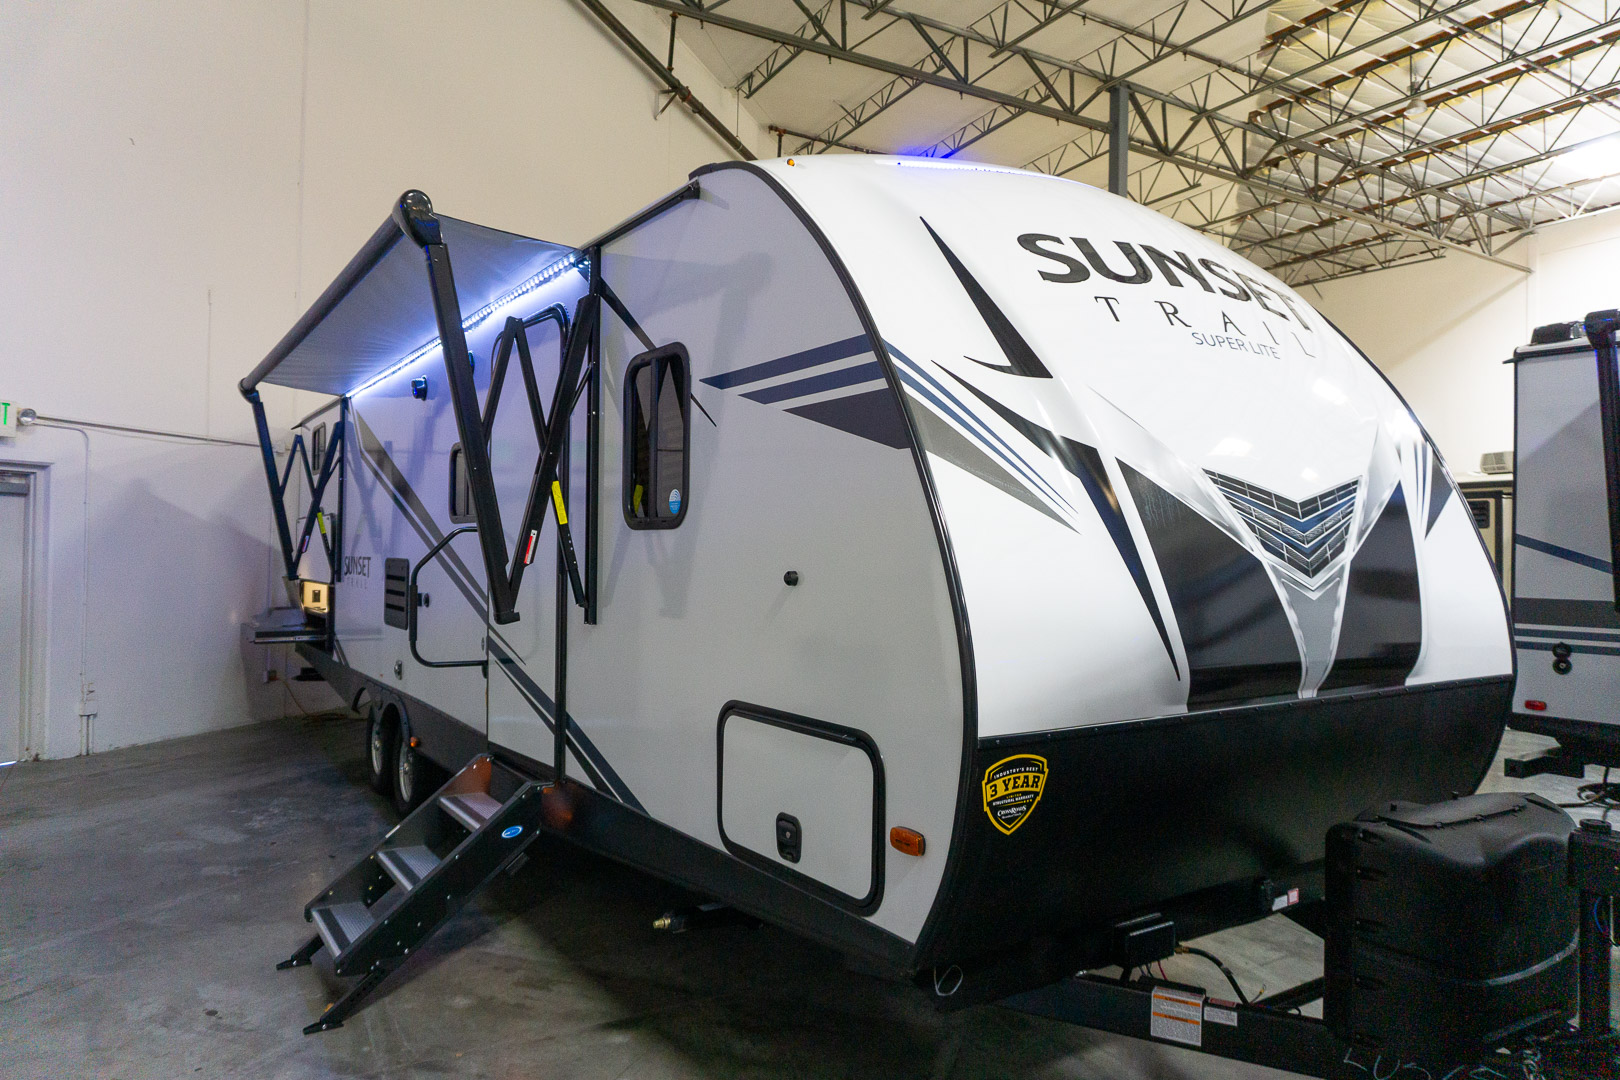 2020 CROSSROADS RV SUNSET TRAIL SUPER LITE SS289QB